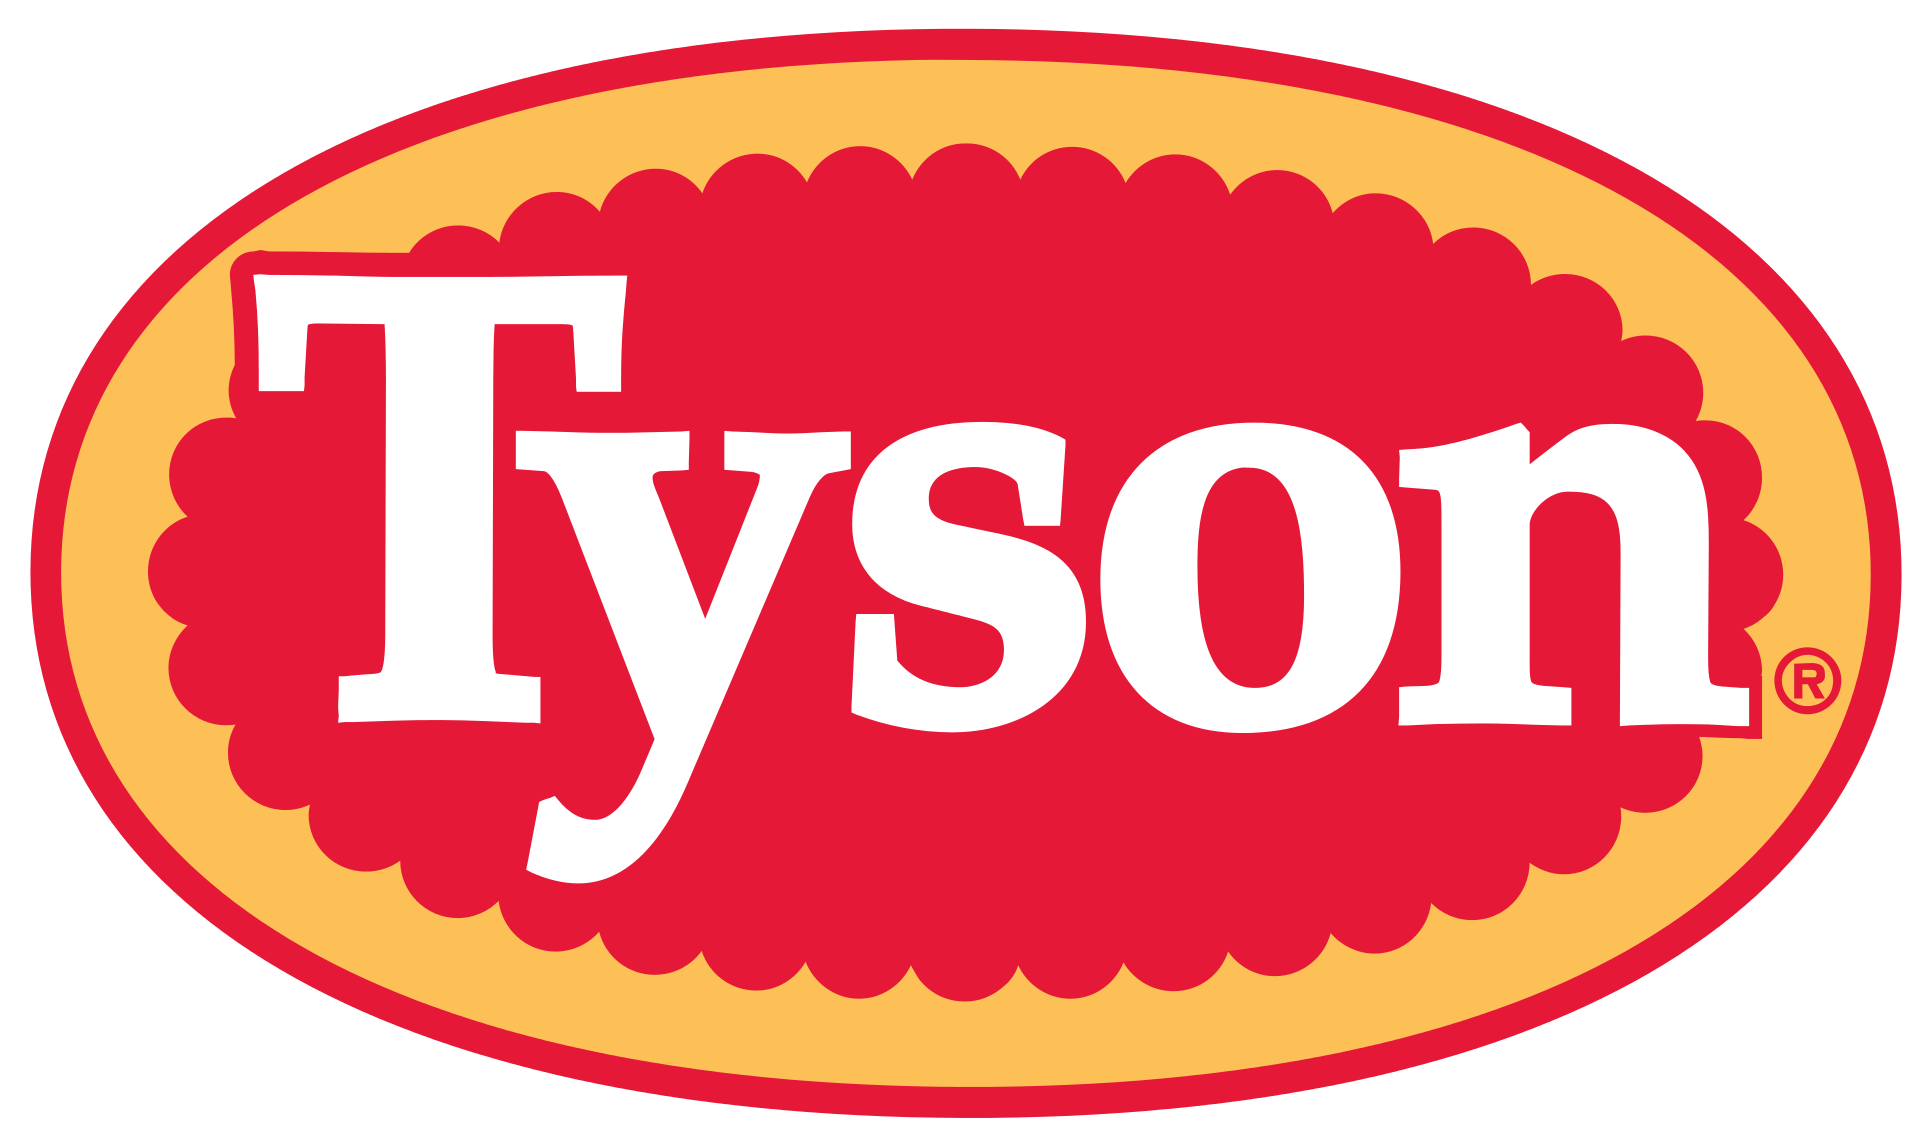 Tyson has proposed building a new chicken processing plant in Kansas.